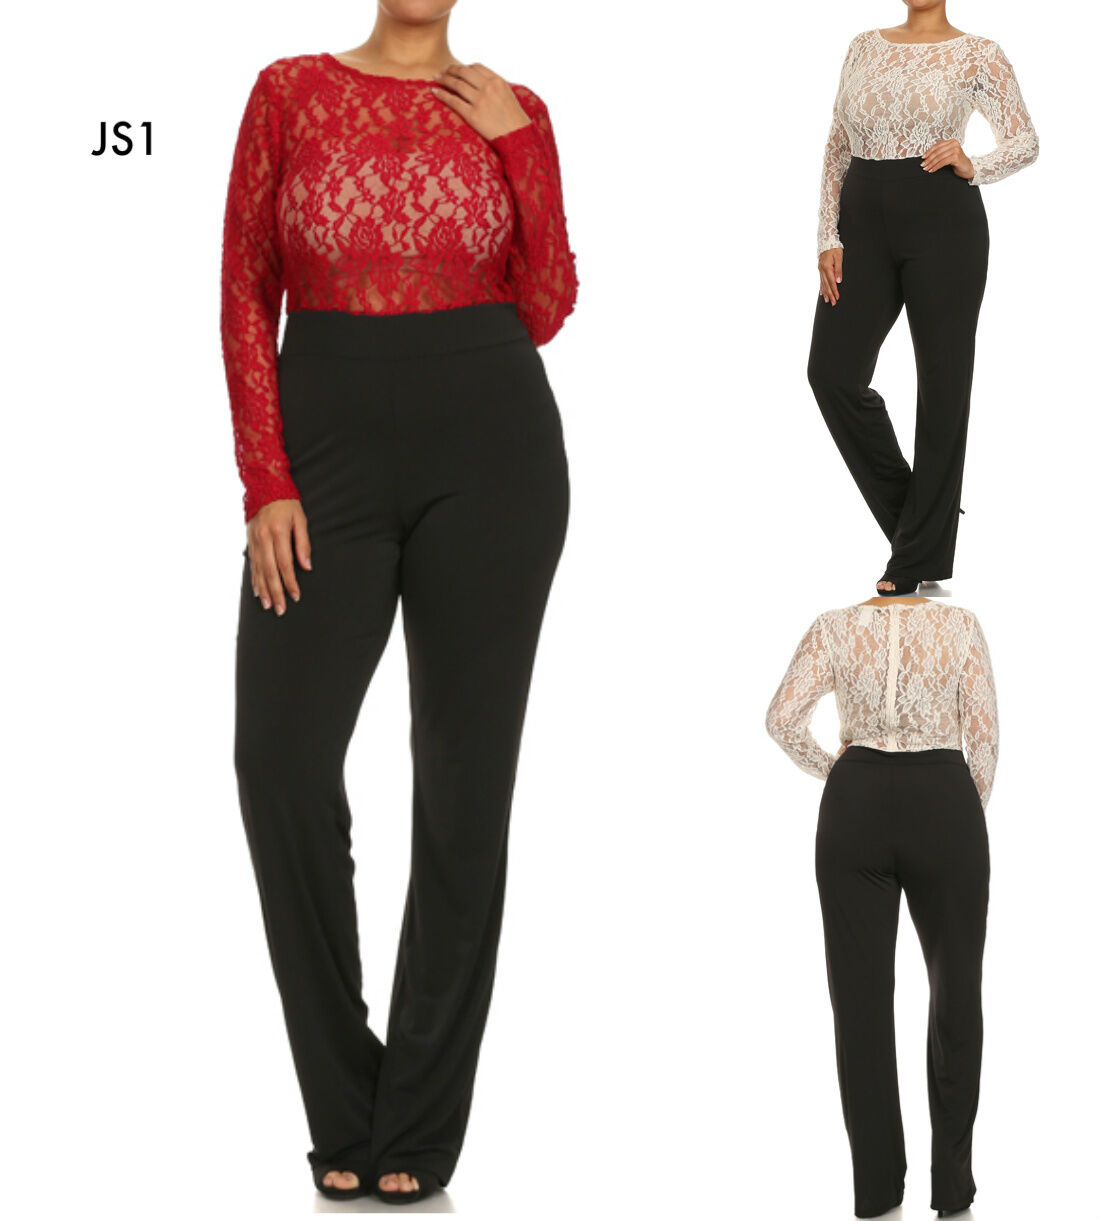 JS1 Ladies Red Size 12 14 Lace Formal Evening Work Office Spring Jumpsuit Plus